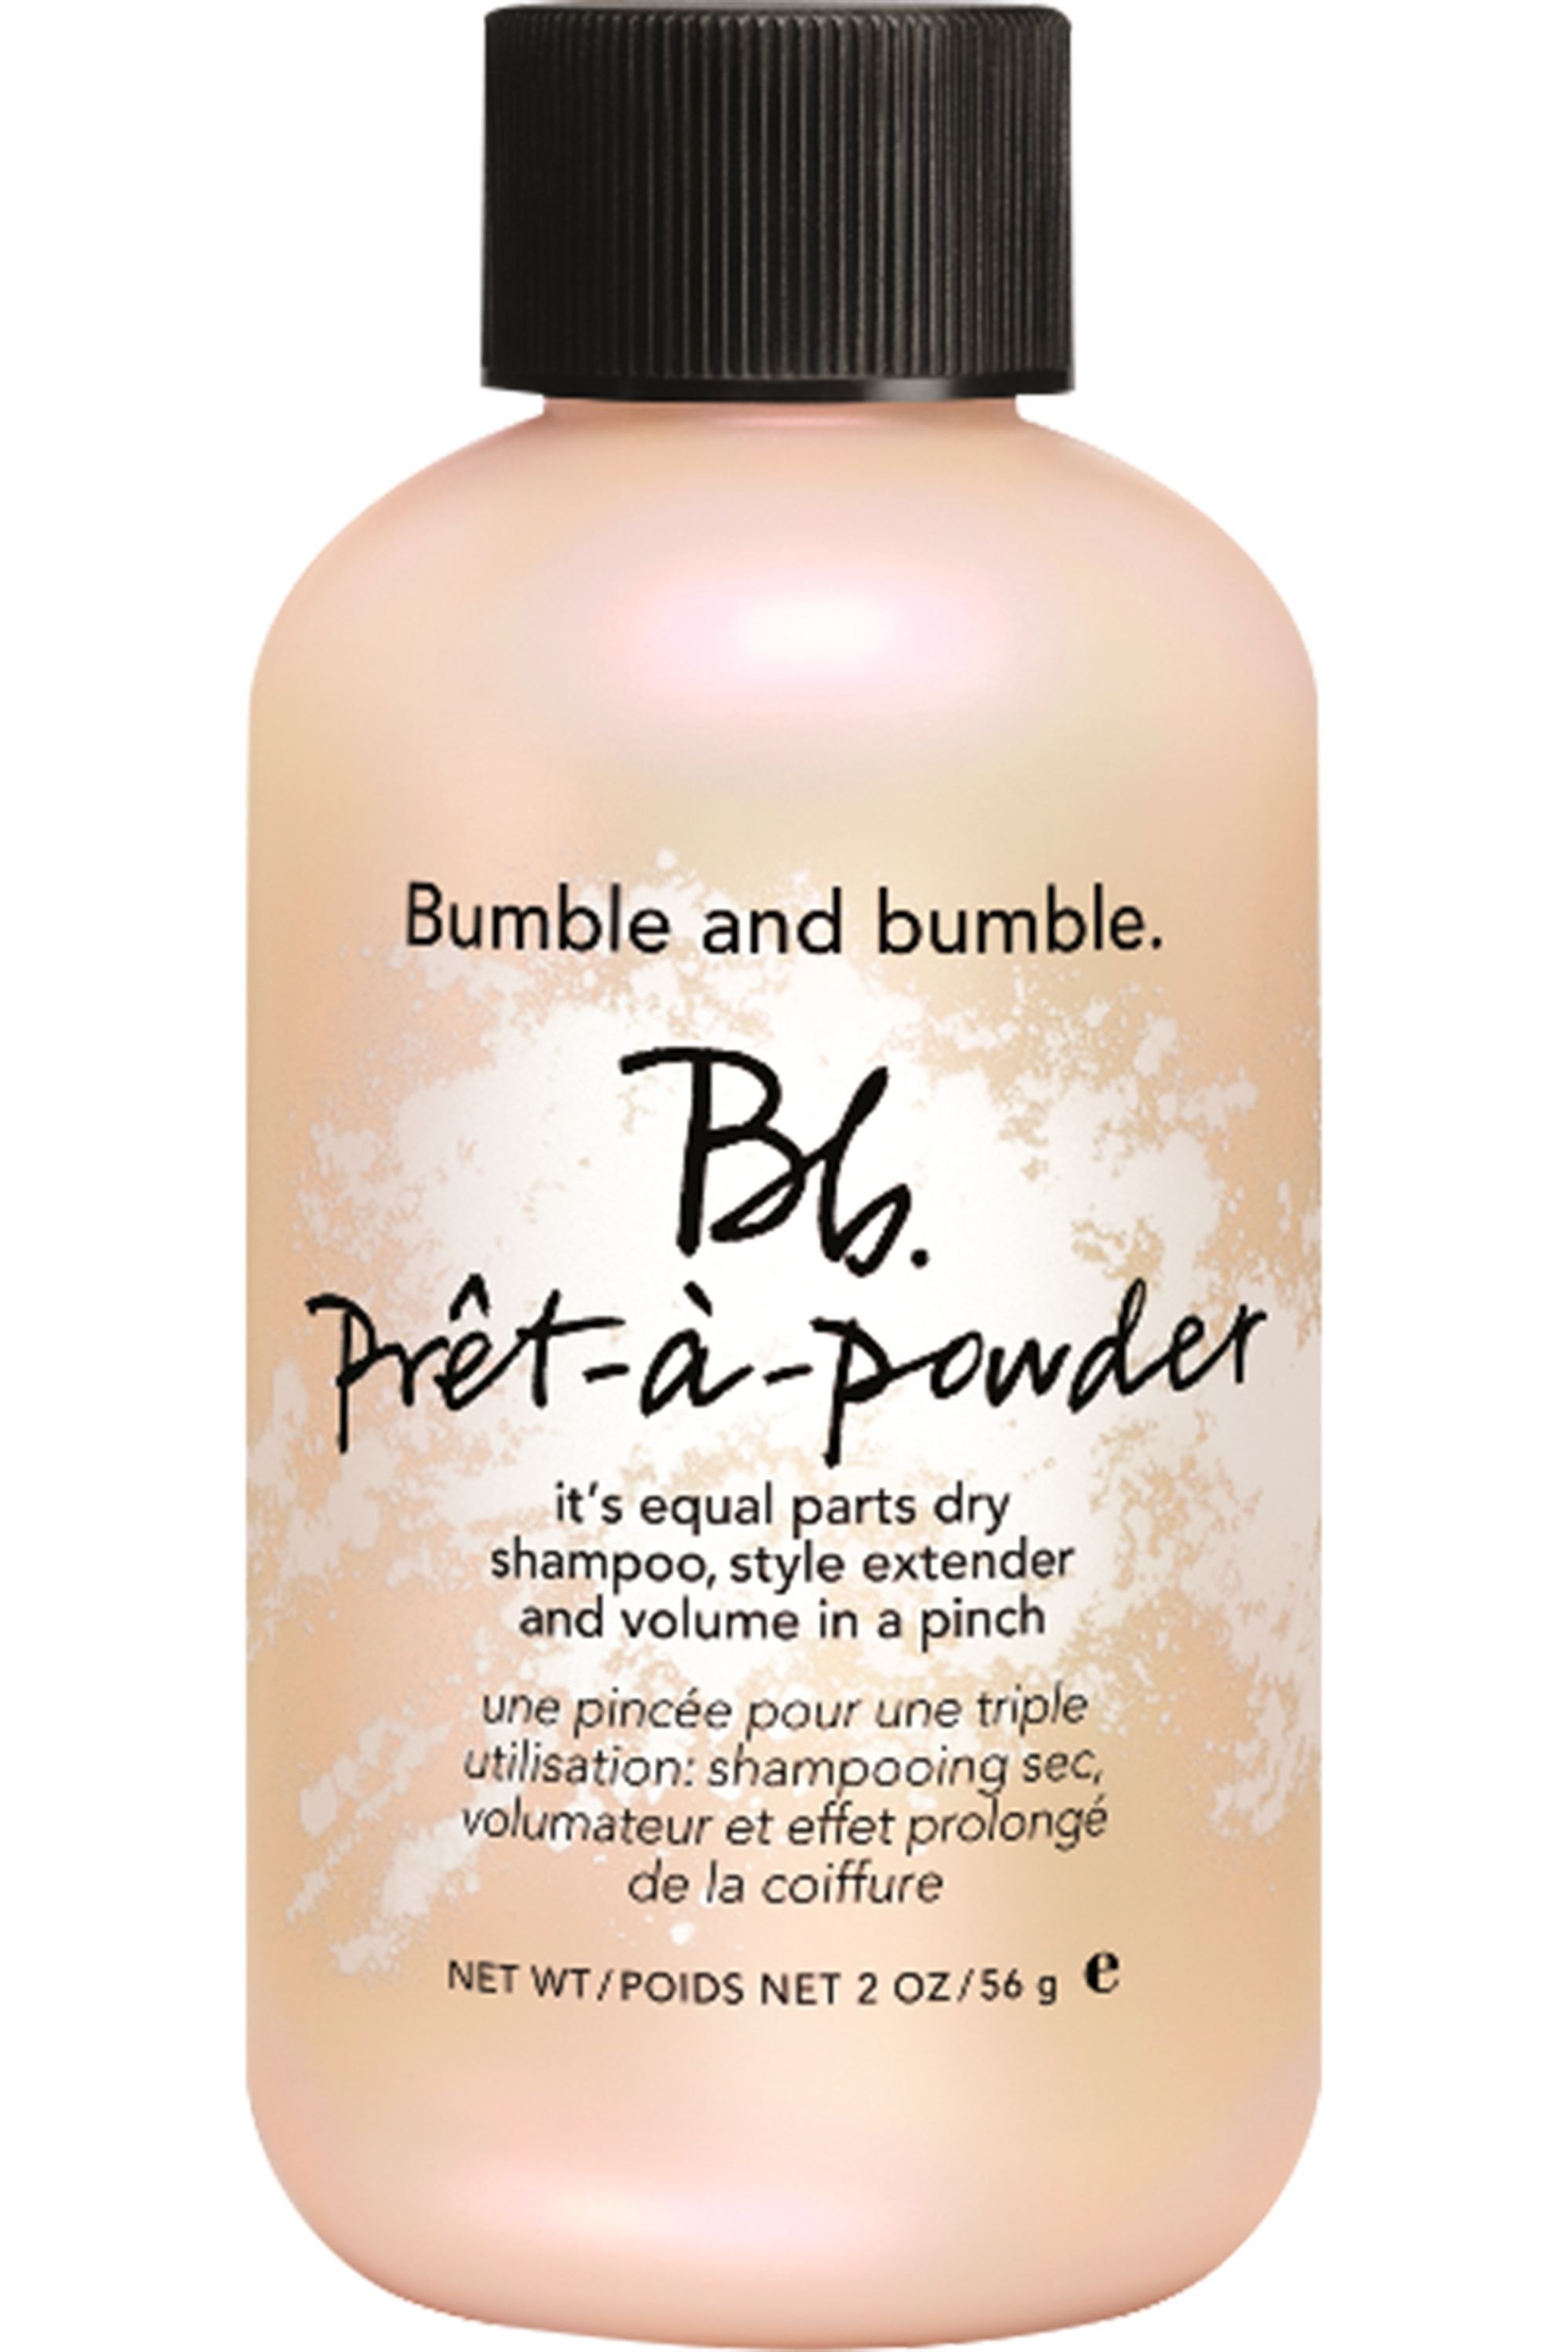 Blissim : Bumble and bumble. - Shampoing sec volumateur Pret-à-Powder - Shampoing sec volumateur Pret-à-Powder